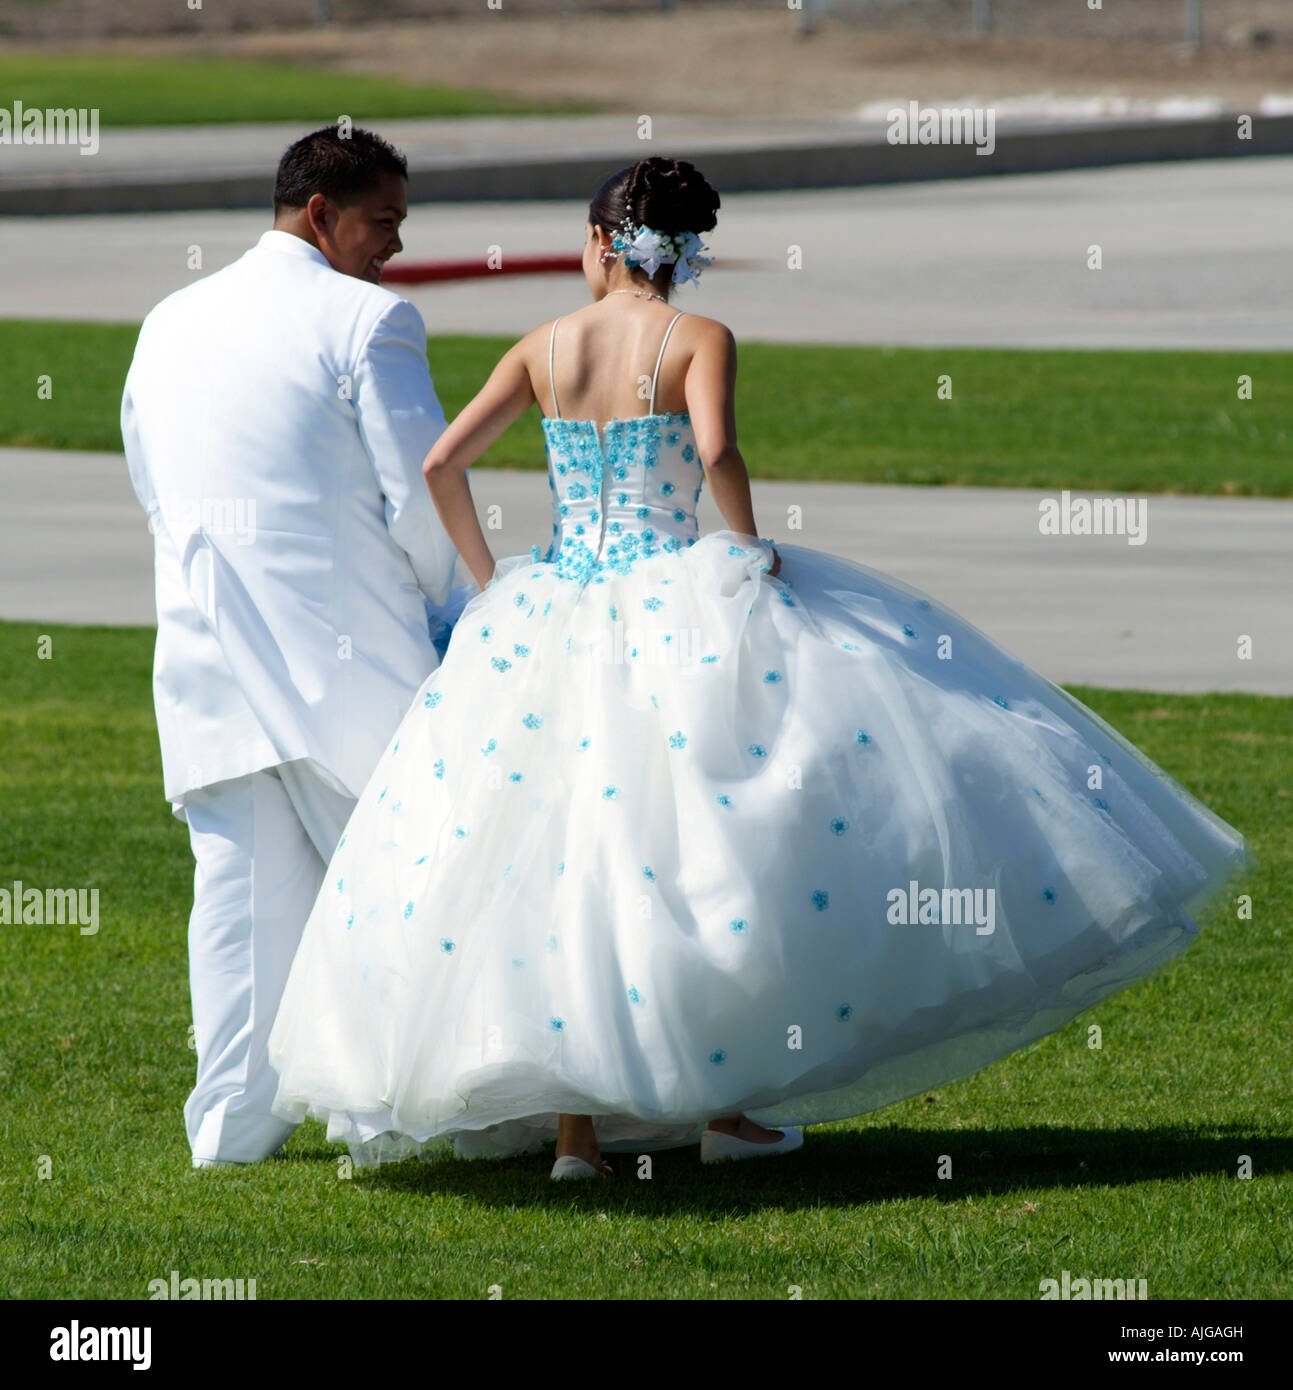 A rea view of a Groom in White Suit with Bride Wearing Blue and ...